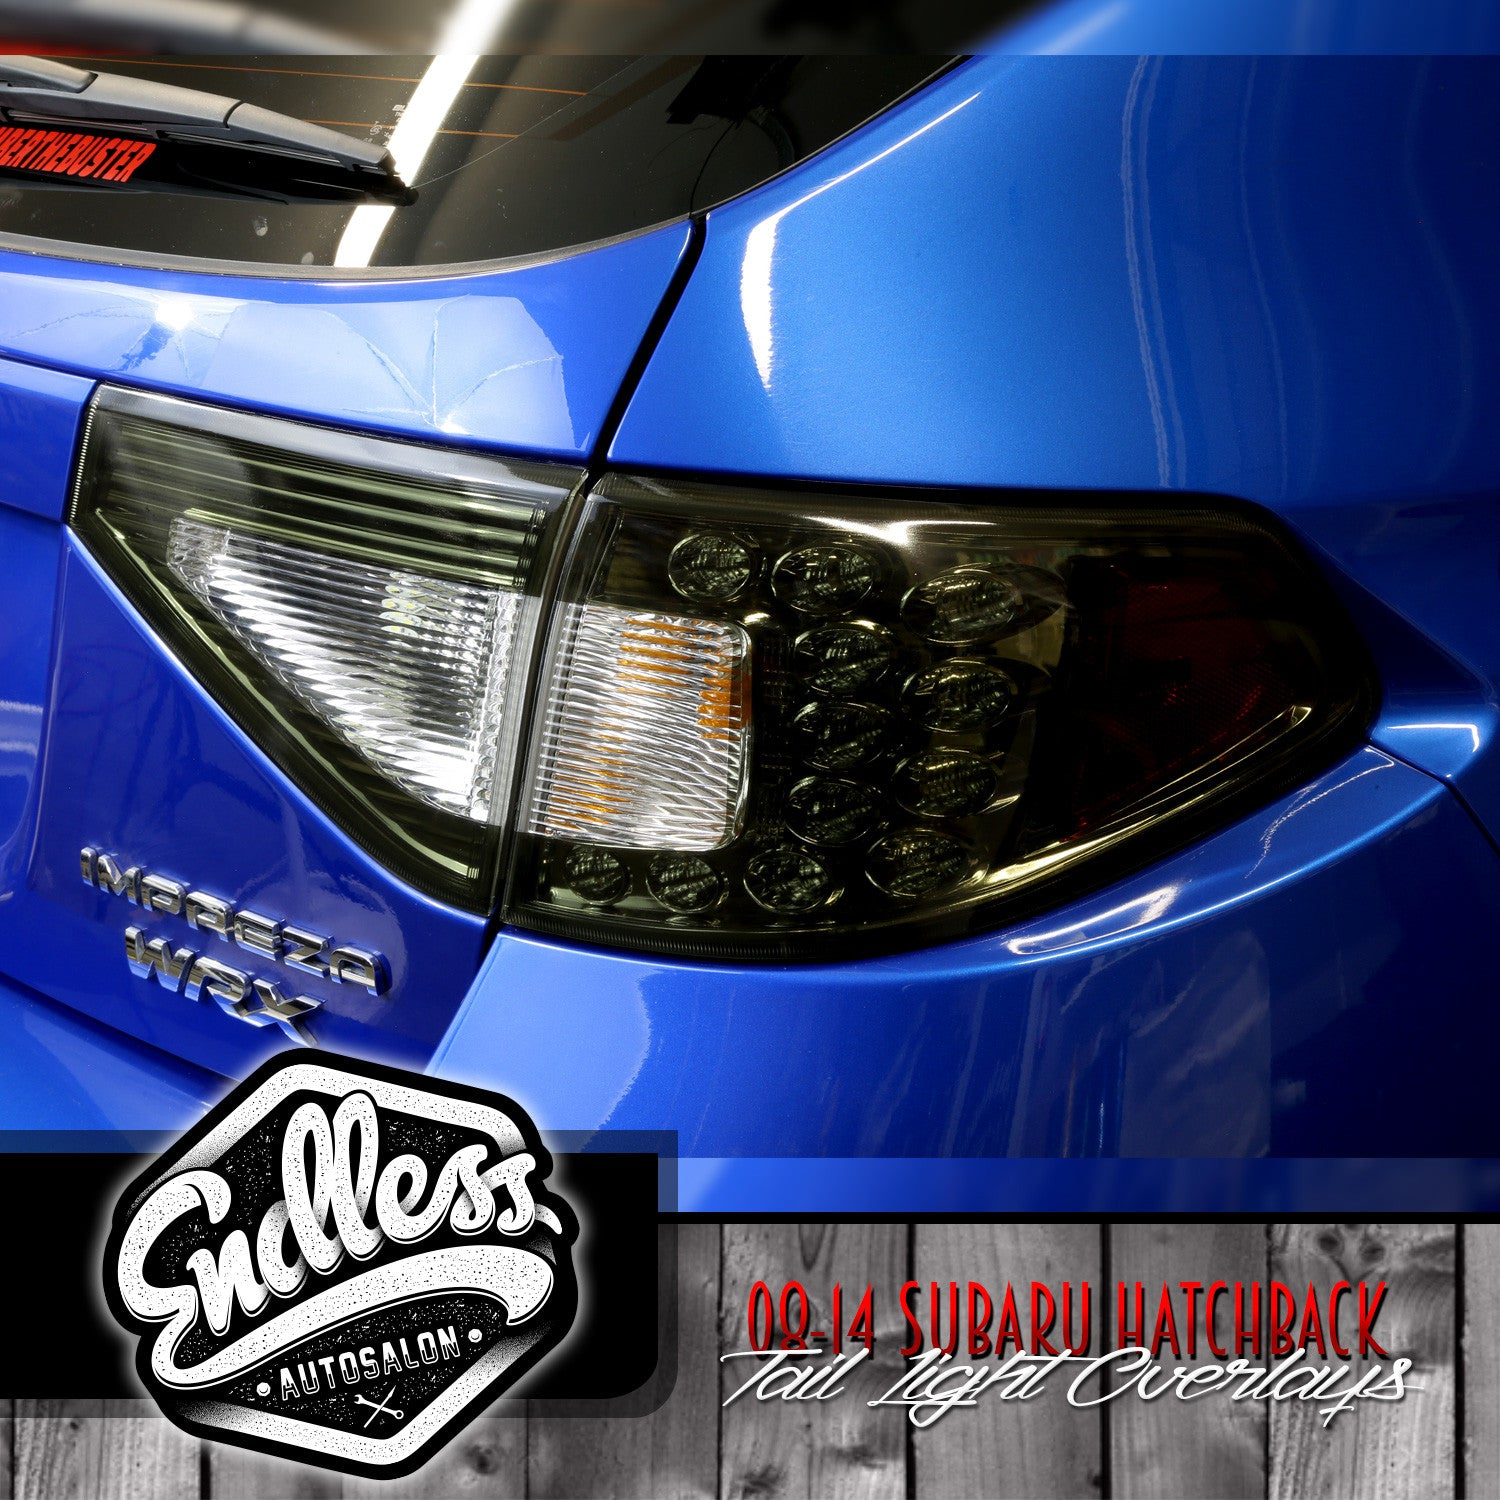 08 14 Subaru WRX STI Hatchback Tail Light Overlays W Cutout Smoke